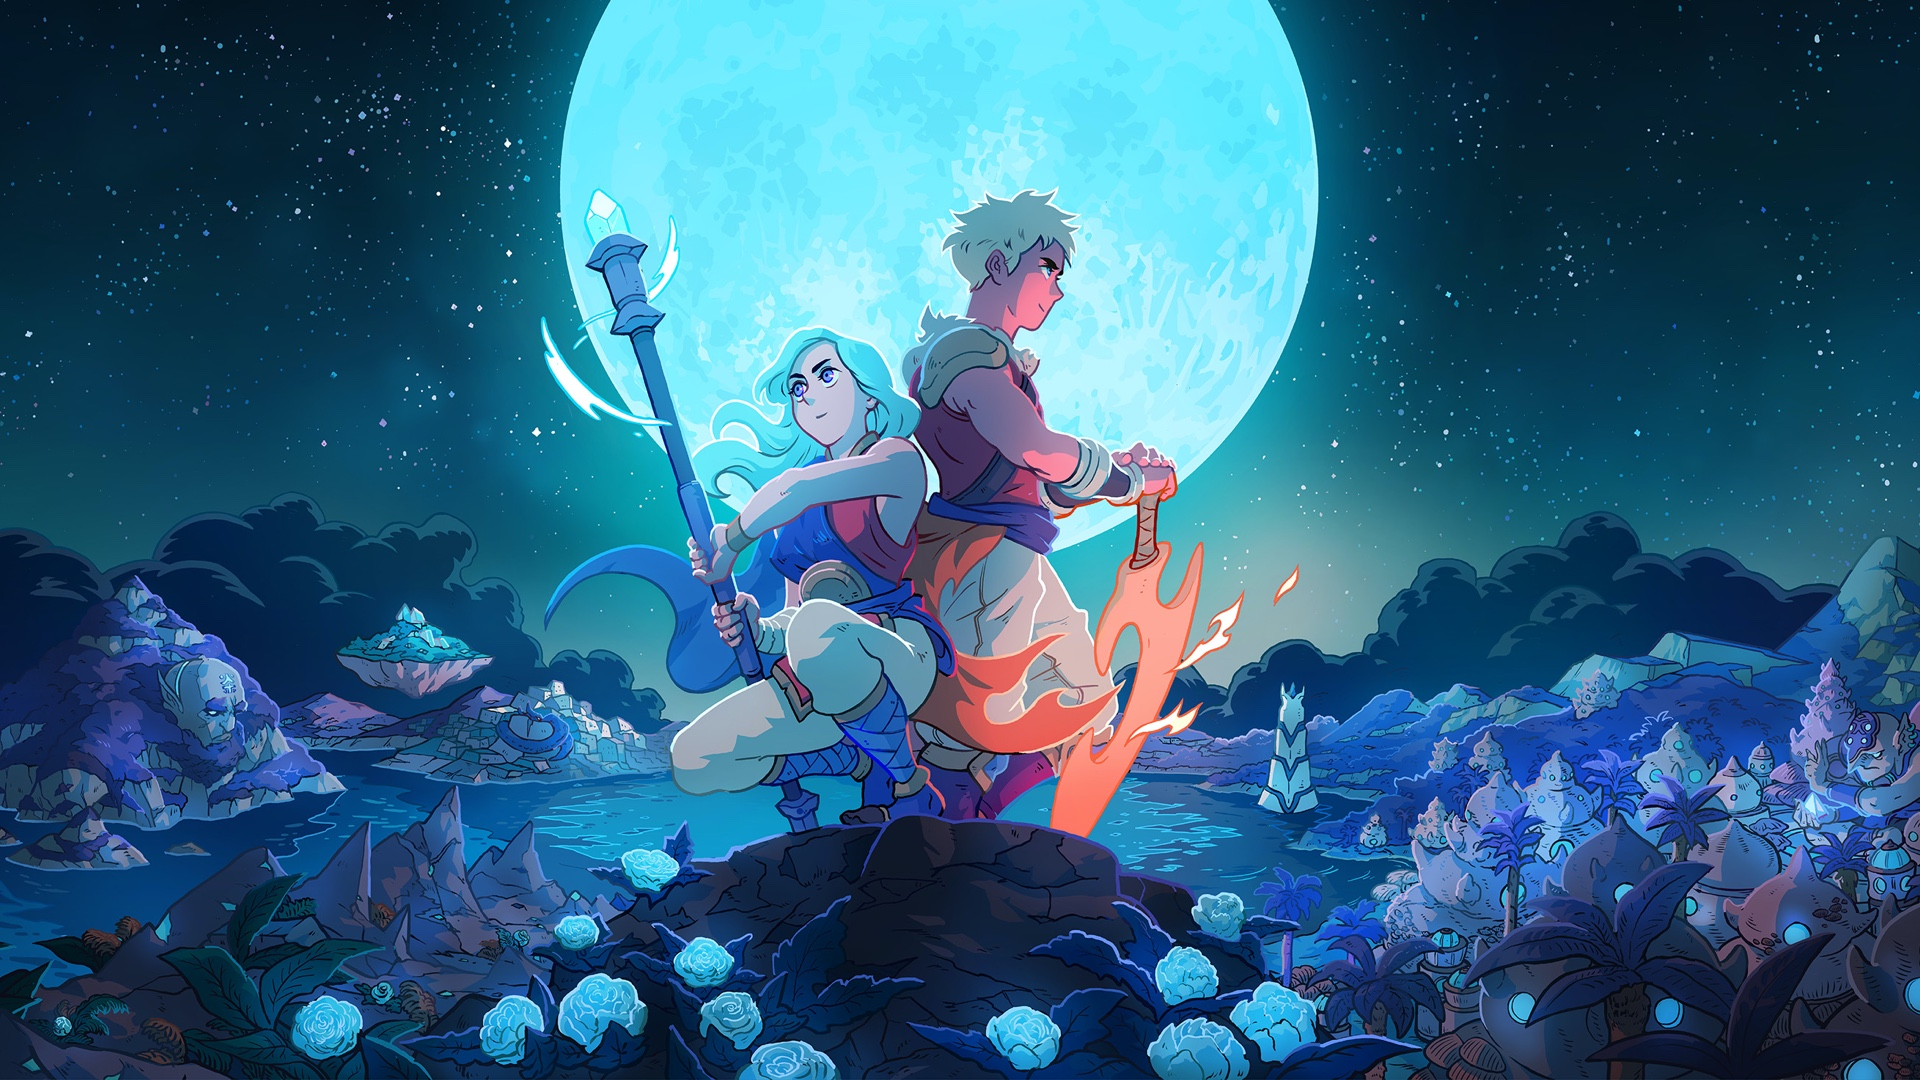 Key Art From Sea of Stars Showing Protagonists Sitting Beneath The Moon